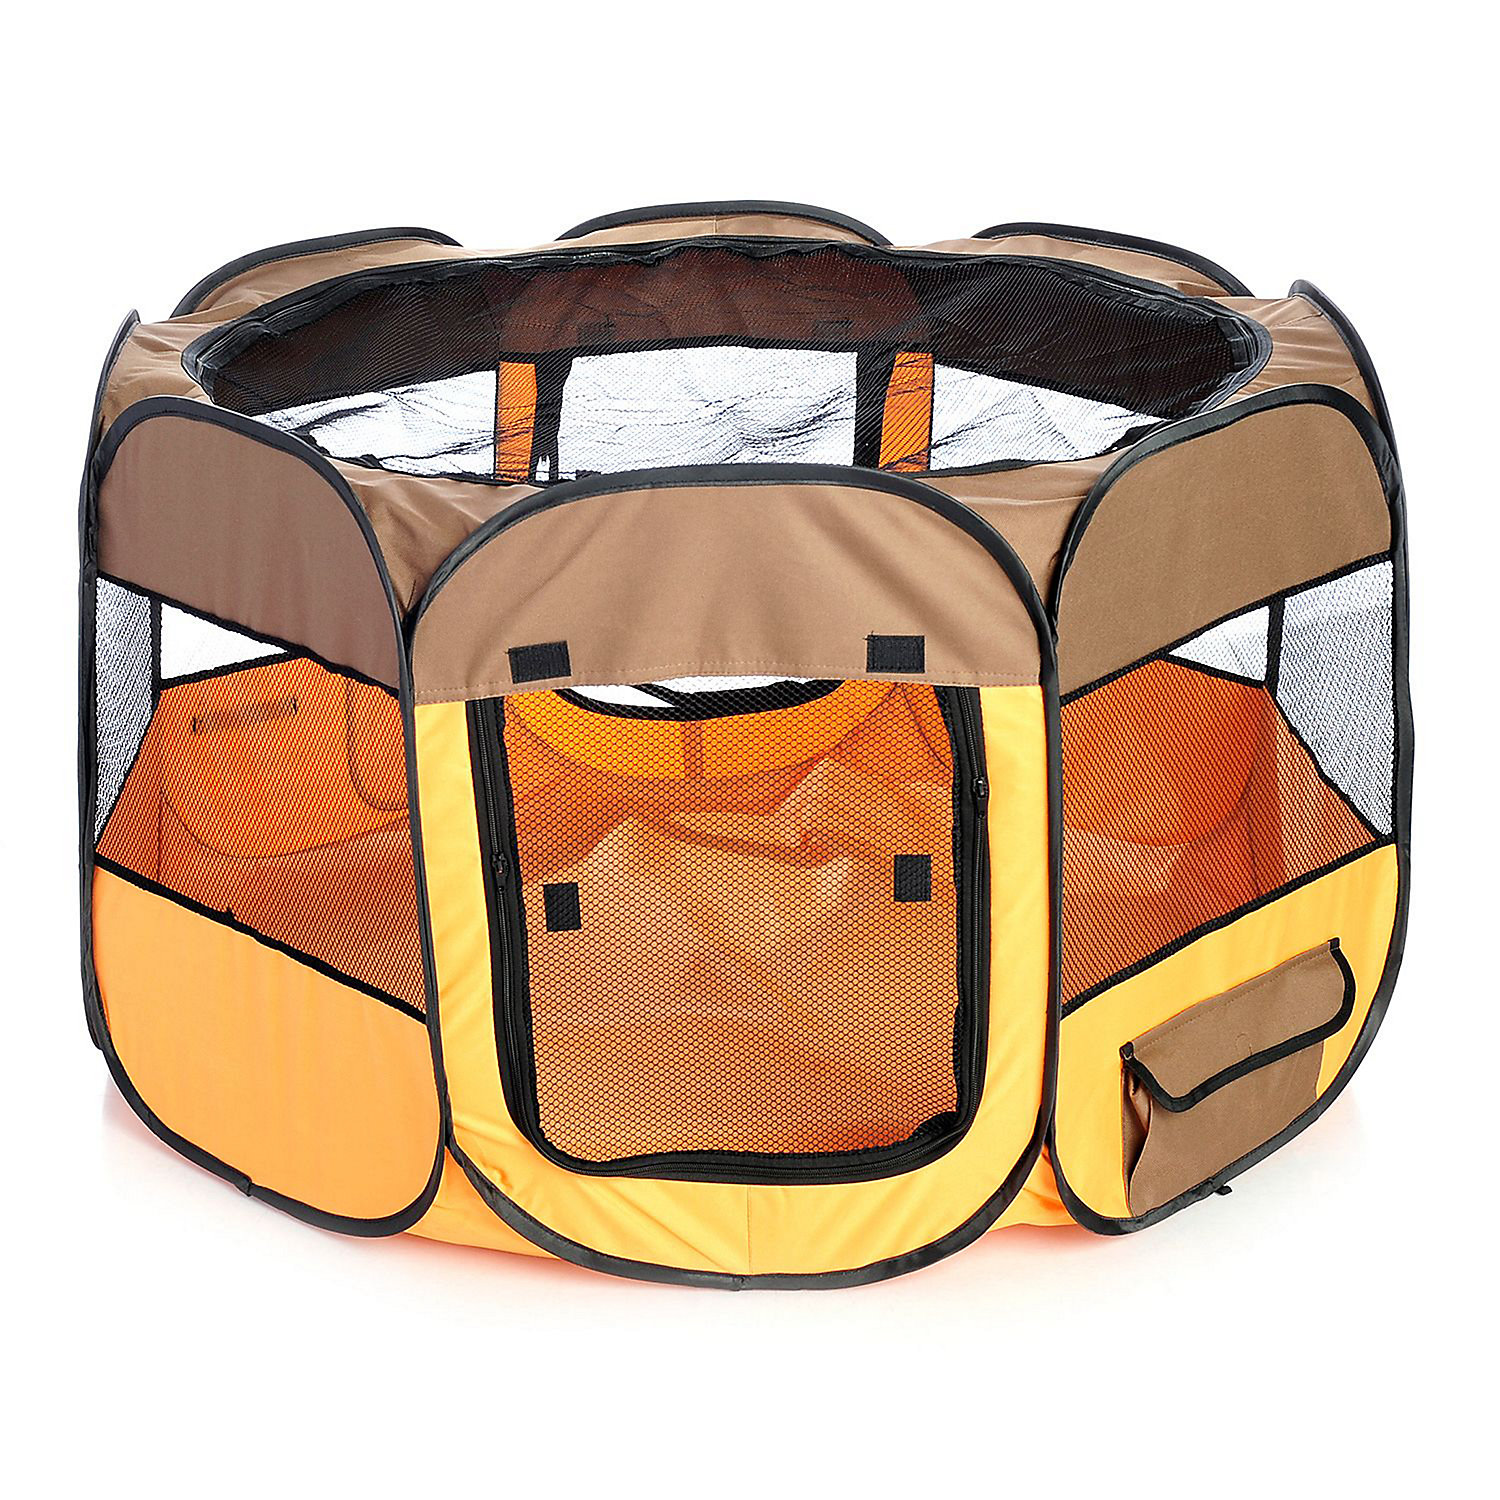 Pet Life All Terrain Lightweight Easy Folding Wire Framed Collapsible Travel Pet Playpen Brown And Orange